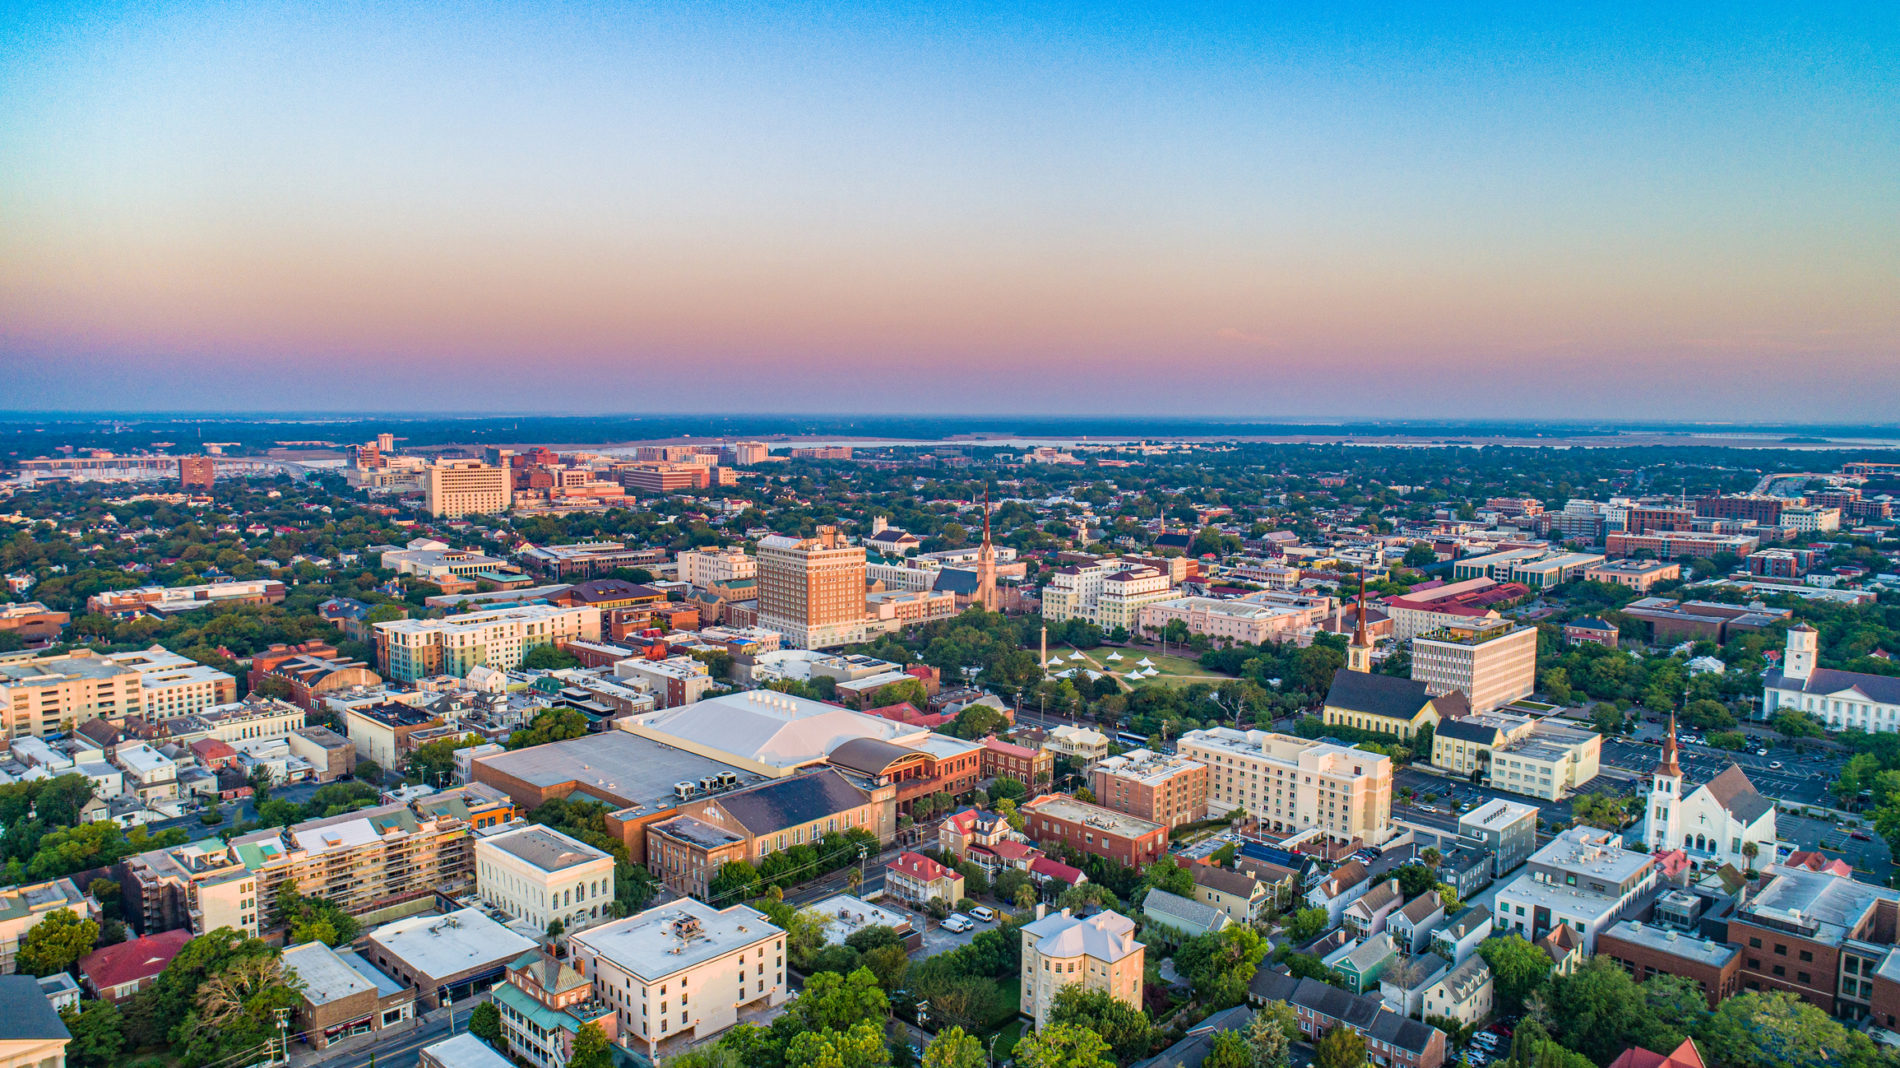 aerial view of west ashley